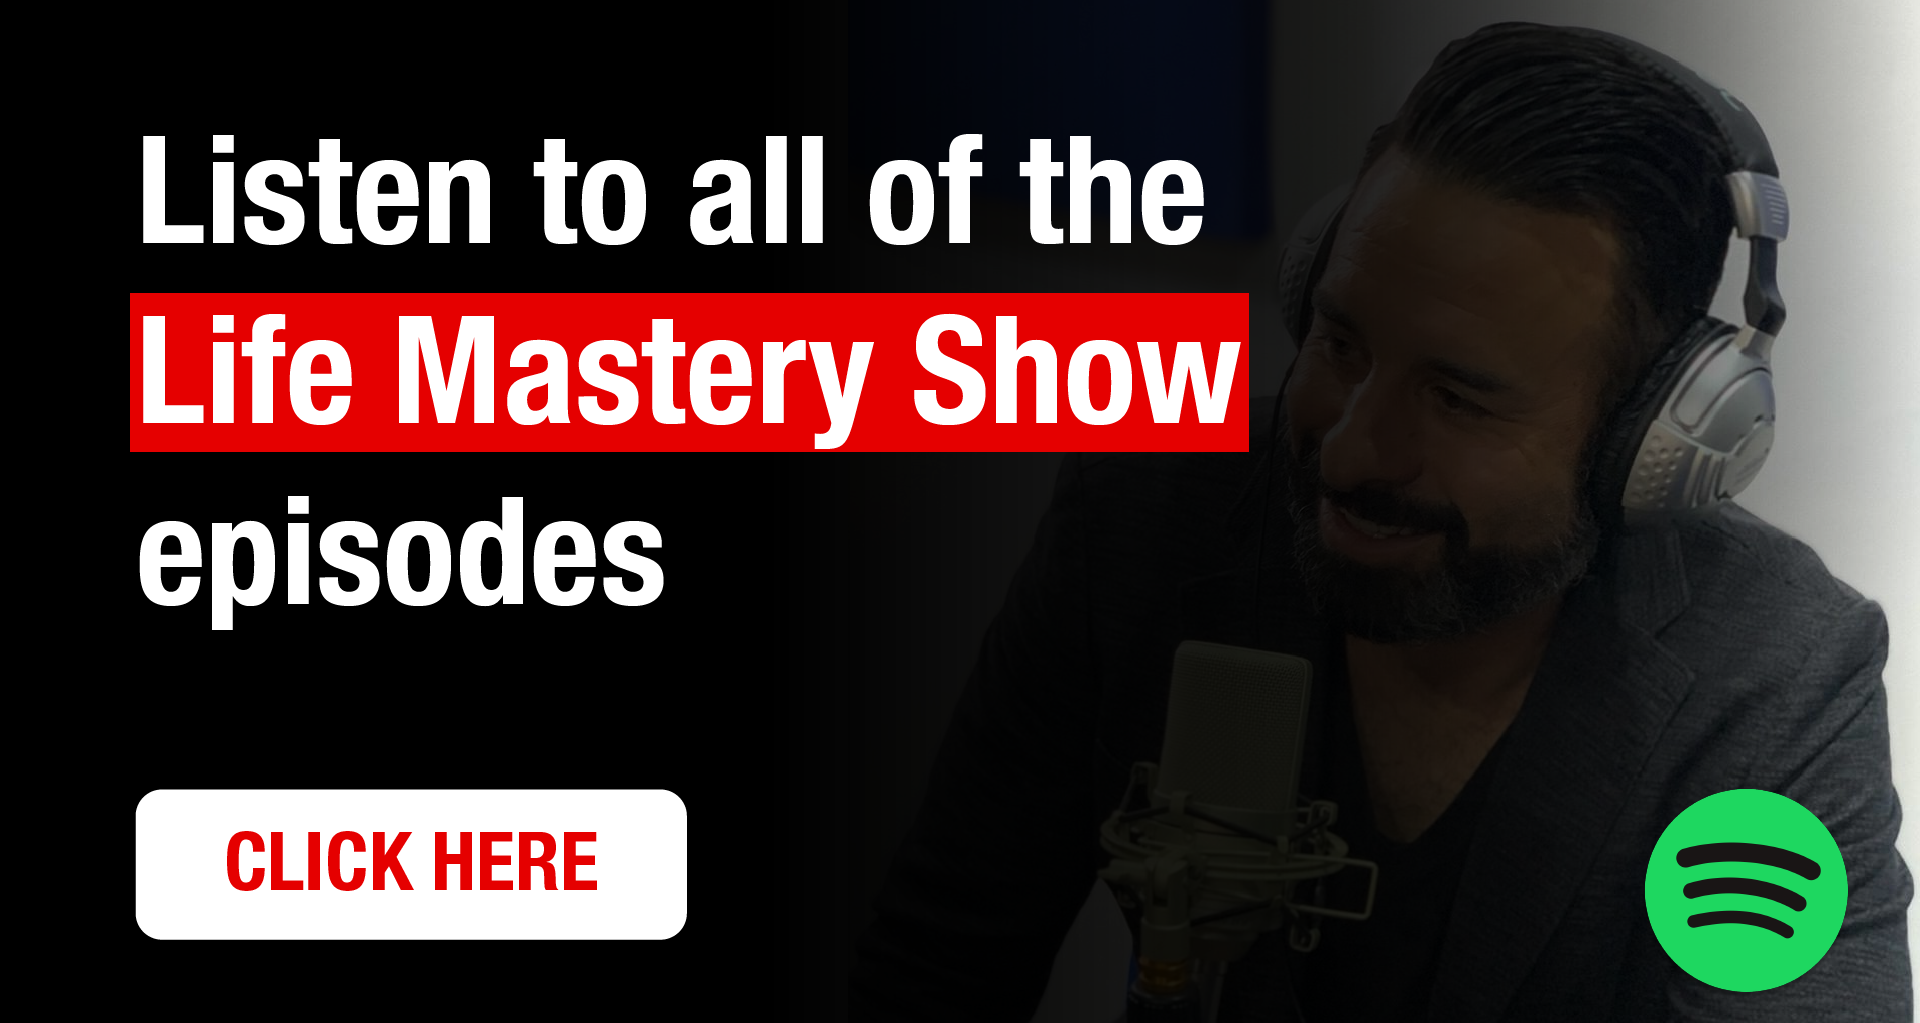 Life Mastery Show on Spotify by Richard Martinez,  project life mastery, project life mastery review, life mastery course, project life mastery net worth